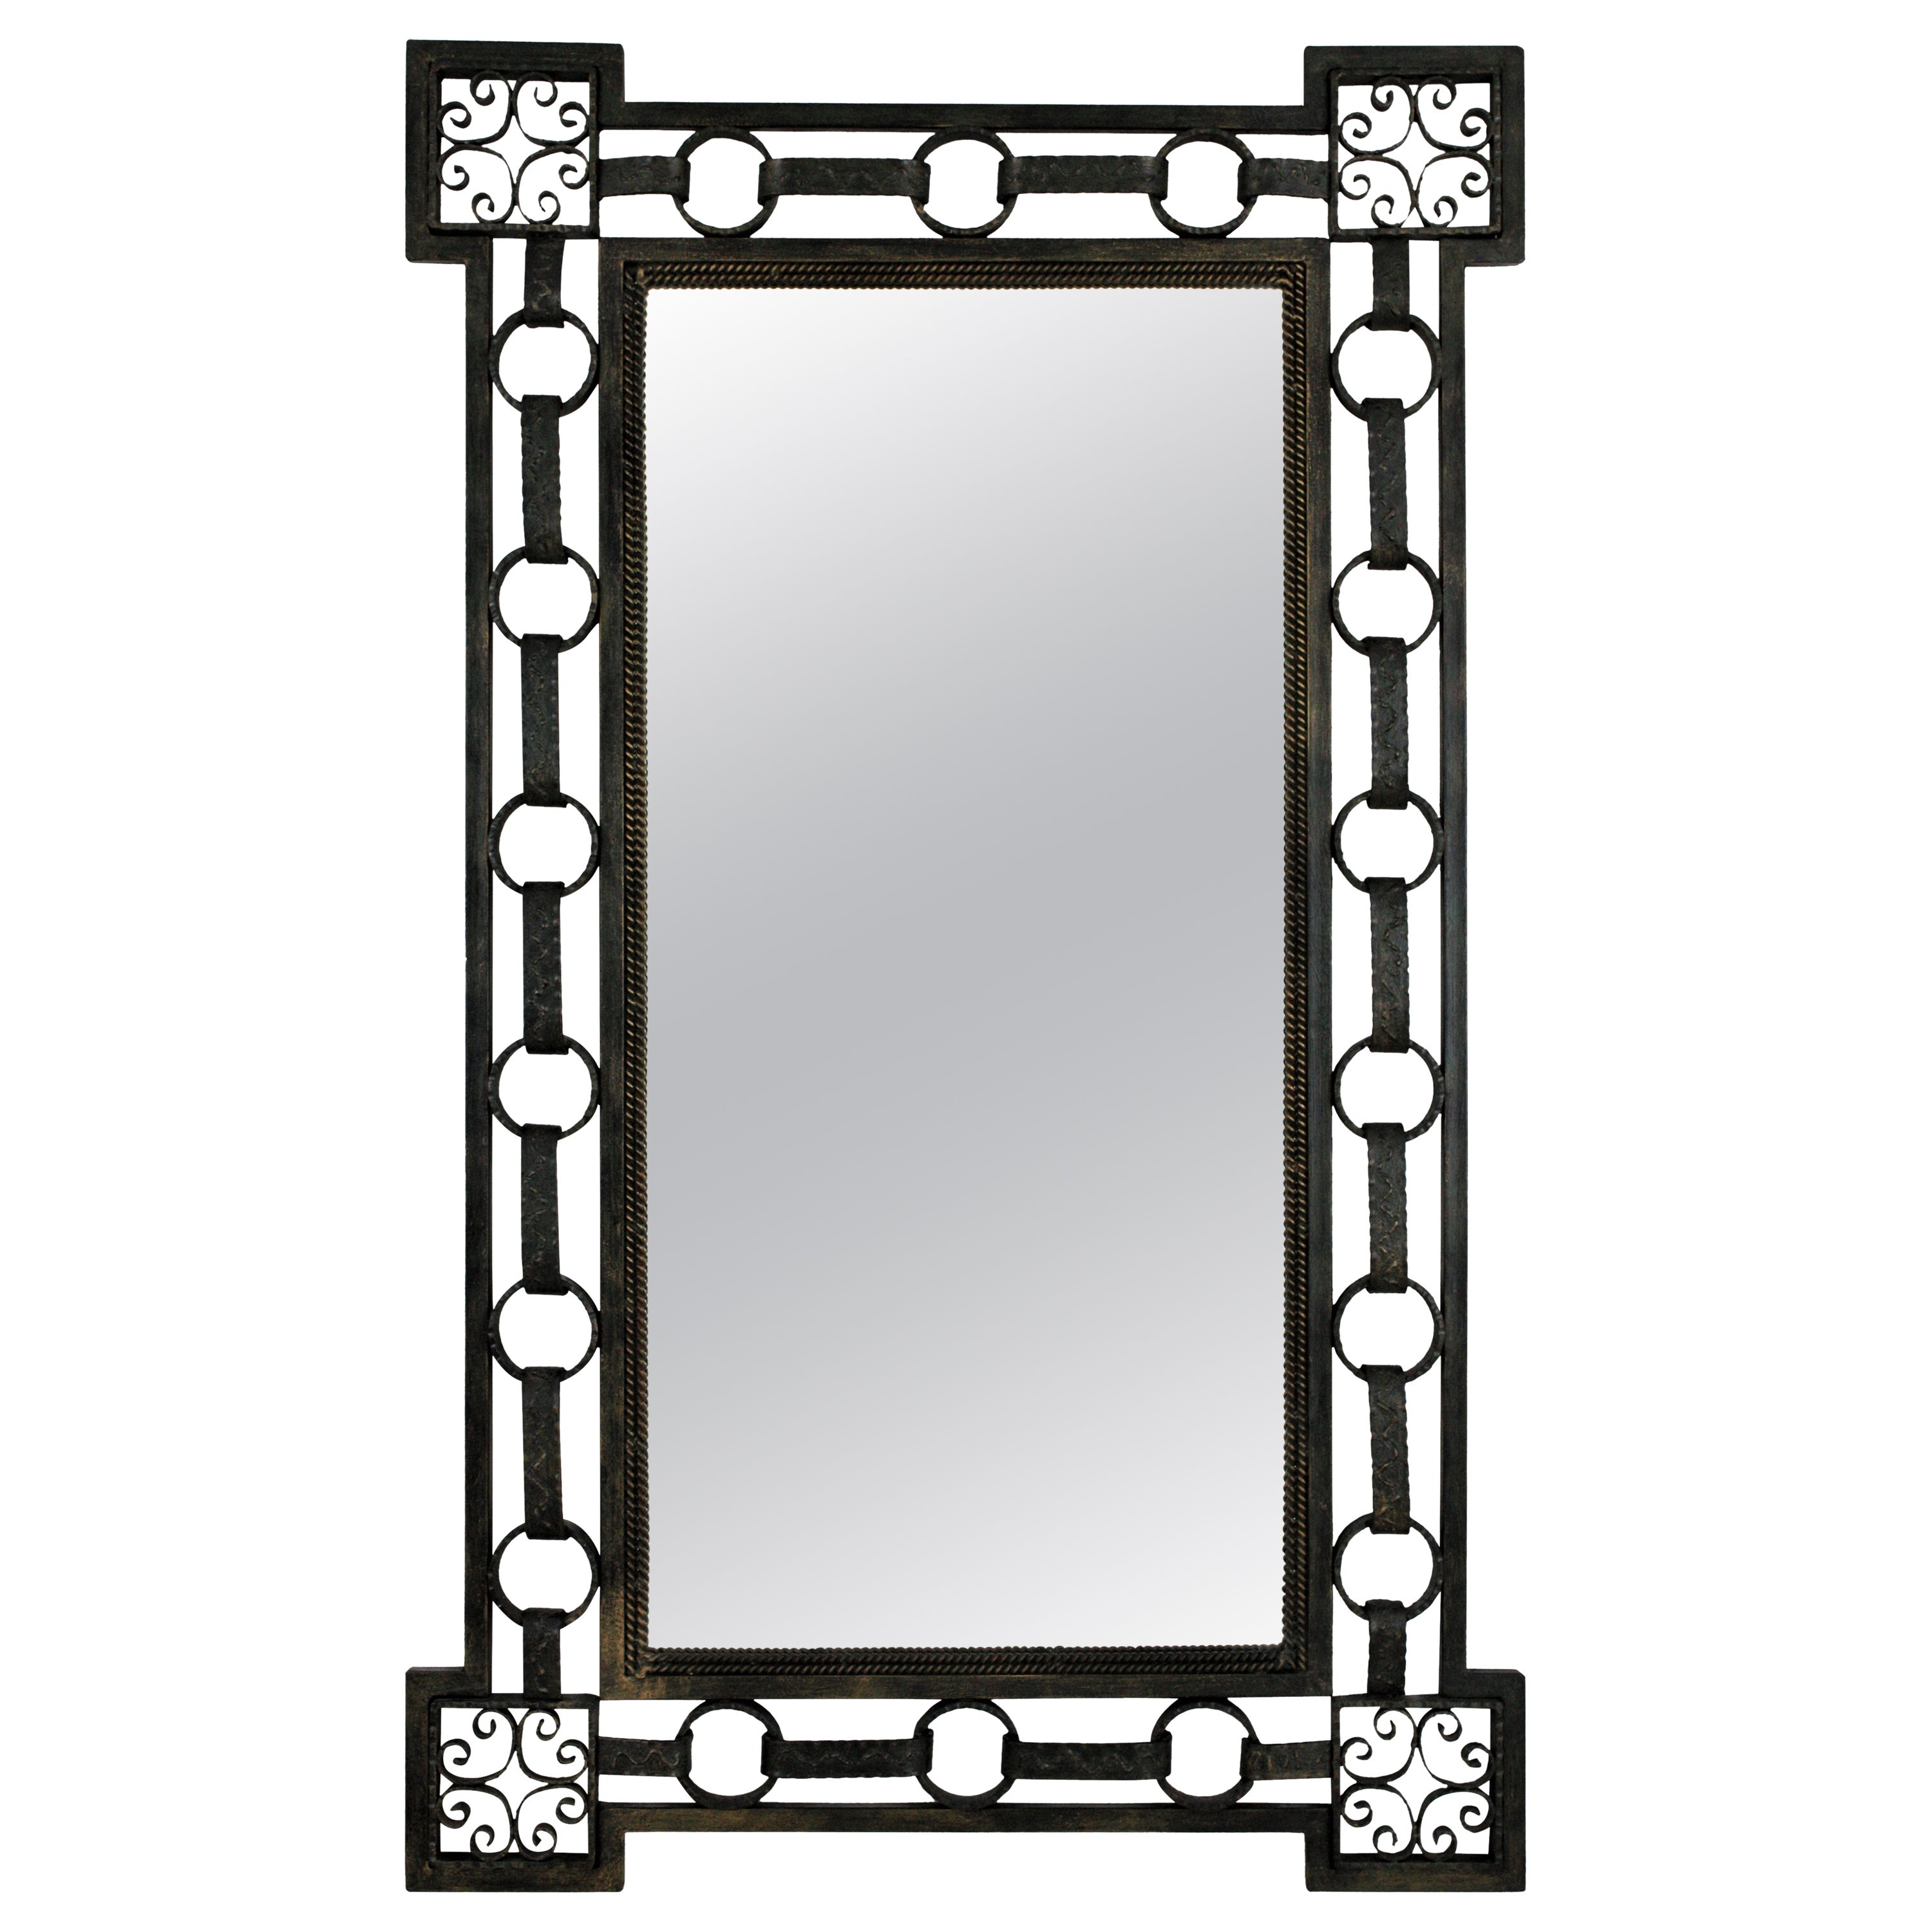 French Wrought Iron Rectangular Mirror with Chain Link Design, 1940s